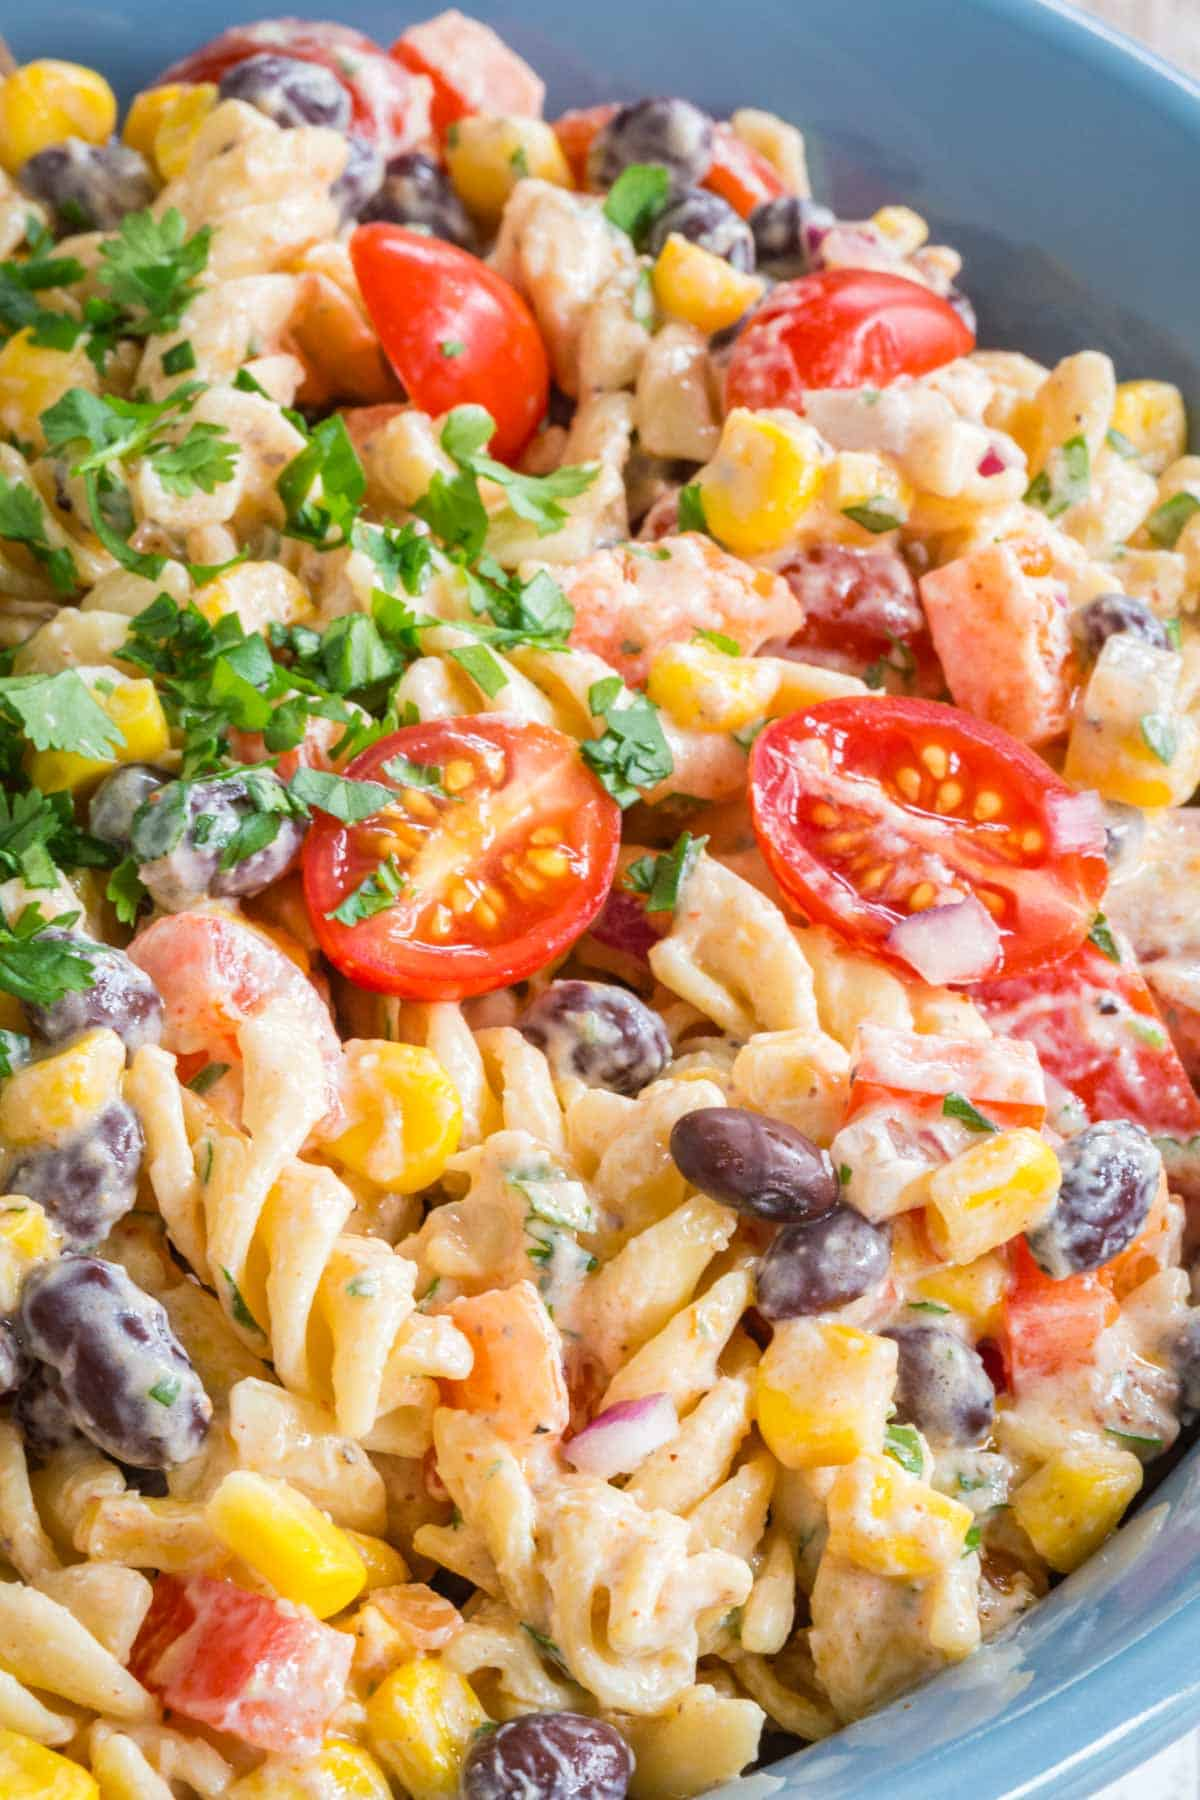 closeup of the rotini pasta, black beans, corn, peppers, tomatoes, and red onions coated in a creamy dressing with a garnish of cilantro